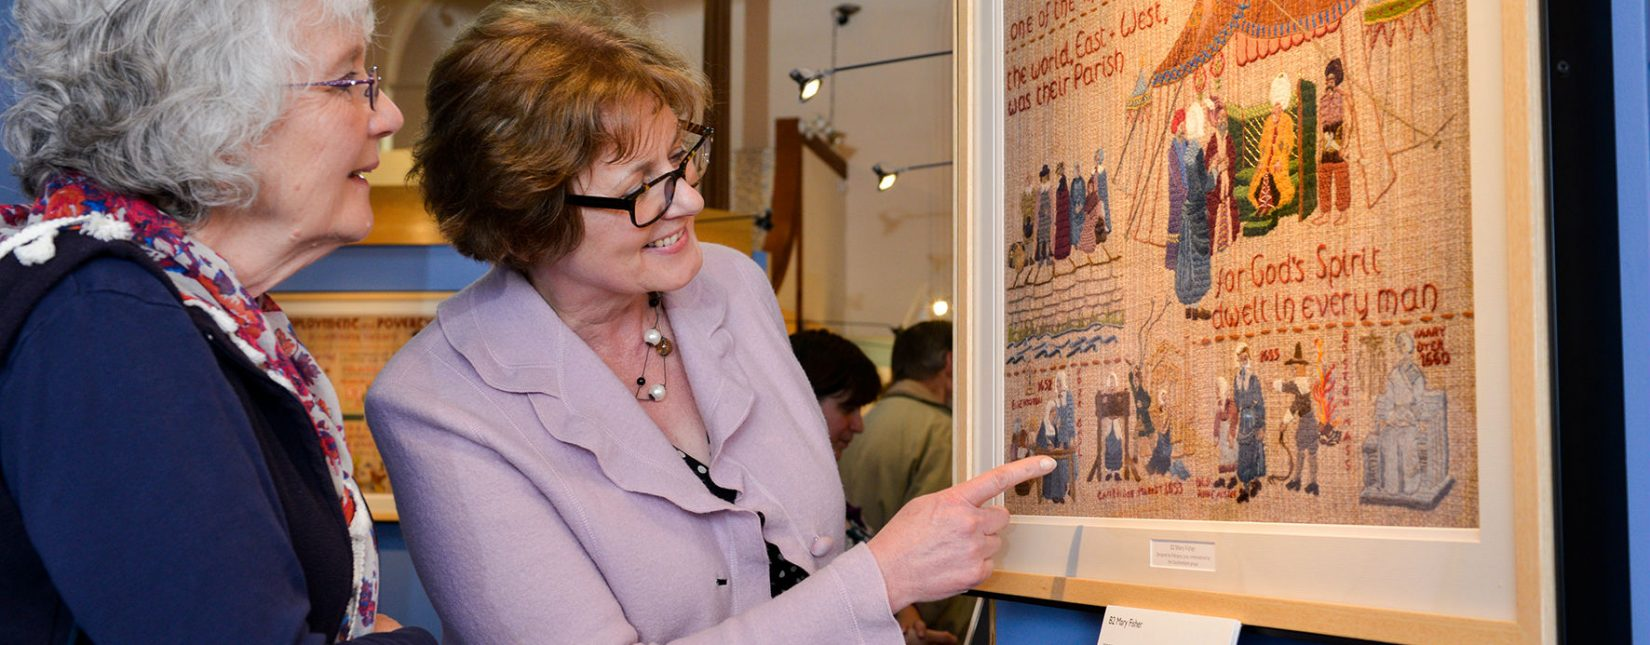 Explore fascinating Quaker social history in the tapestry panels at the Quaker Tapestry Museum